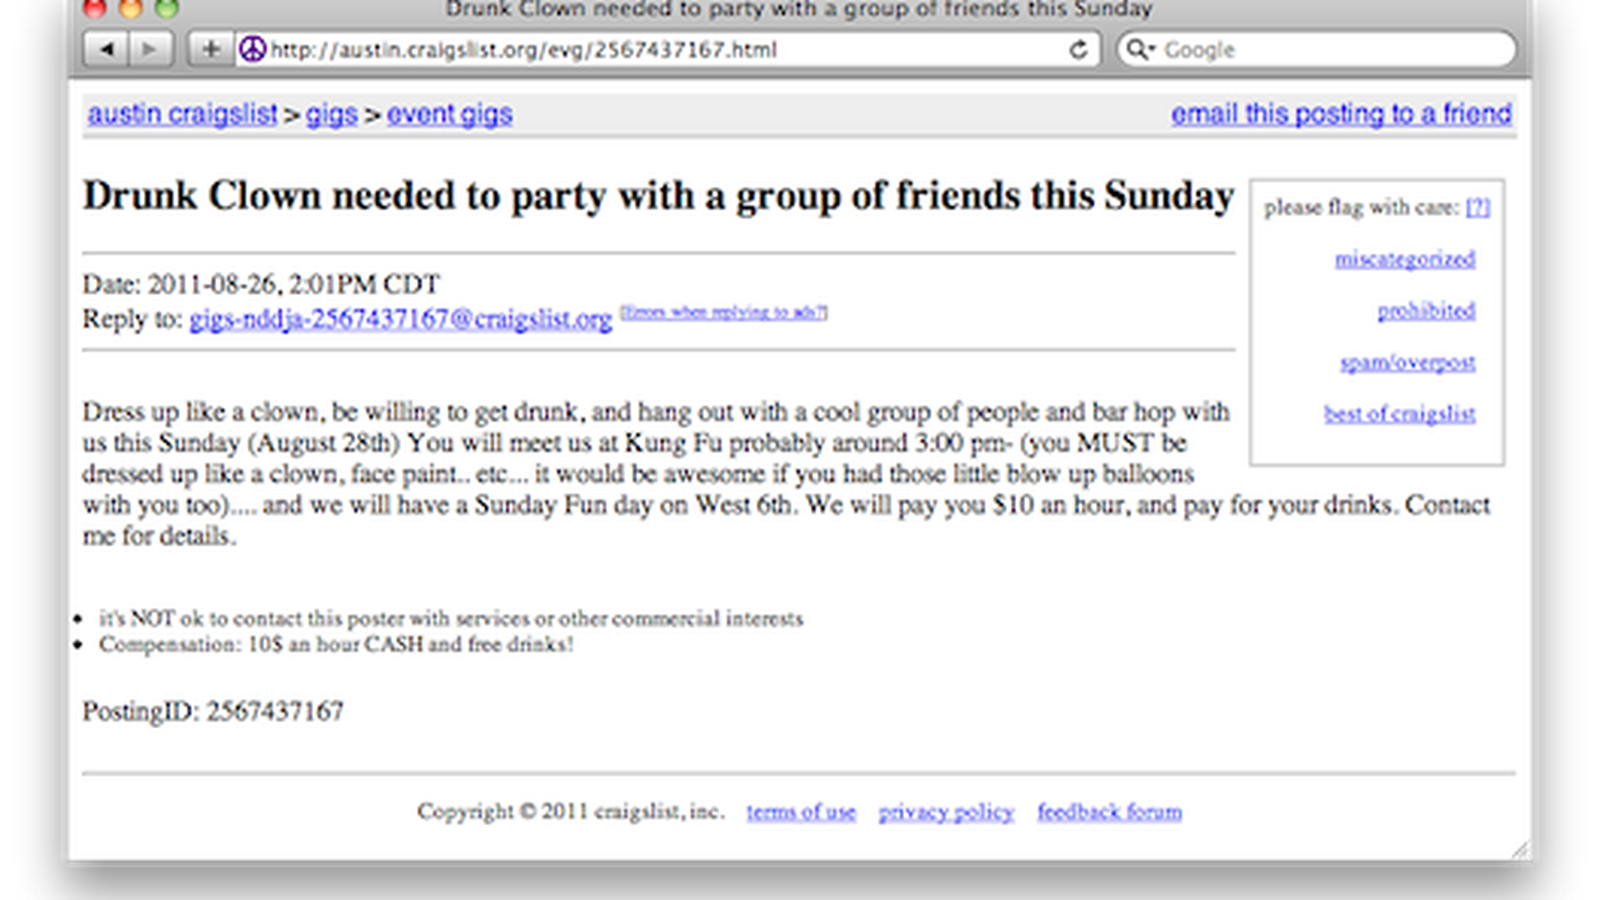 Craigslist Ad Seeks Drunk Clown For $10 an Hour 'to Party